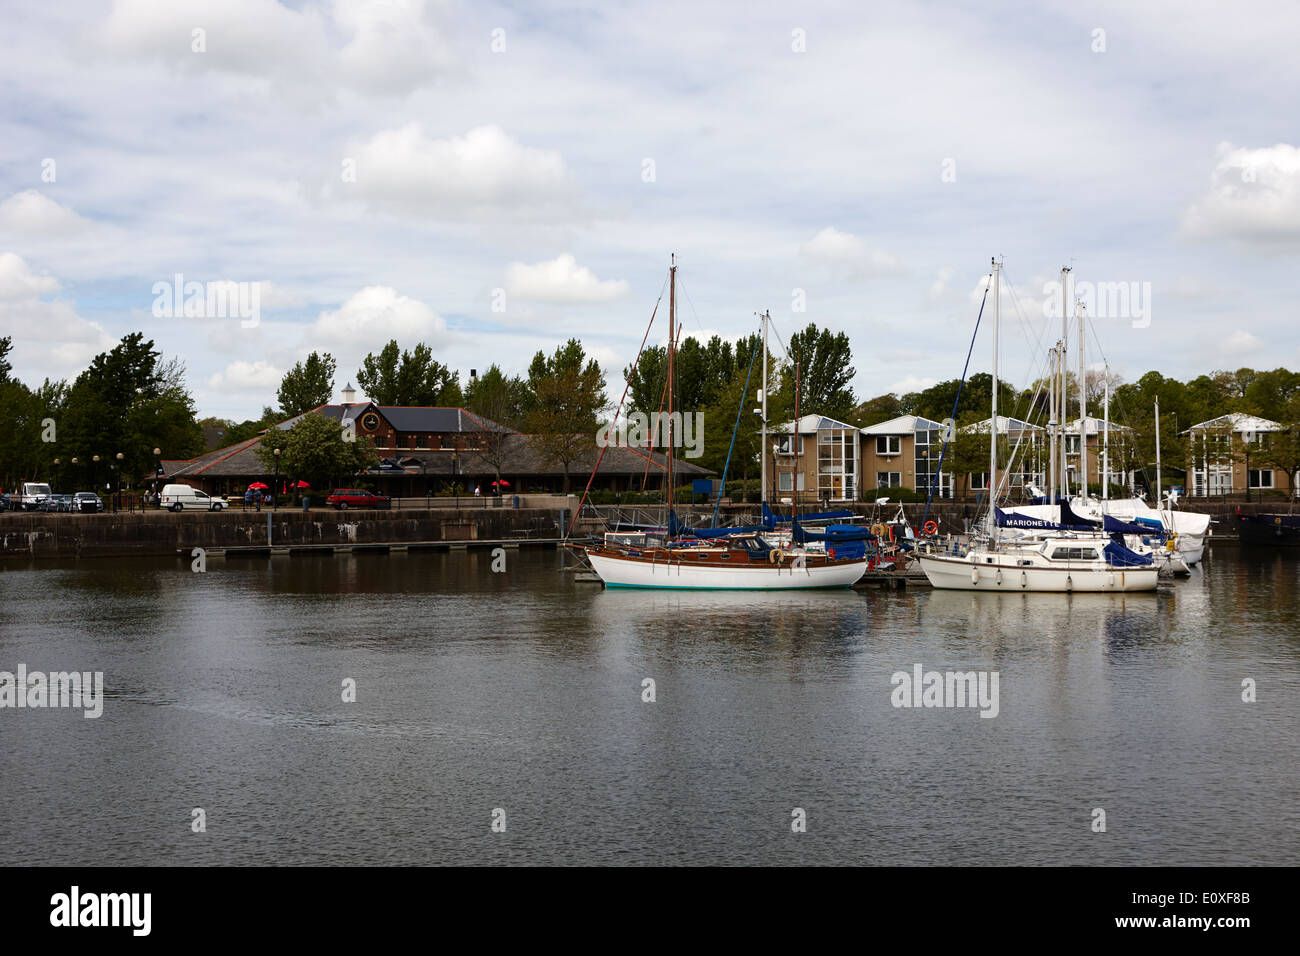 edward albert dock in Riversway Preston docklands marina England UK - Stock Image